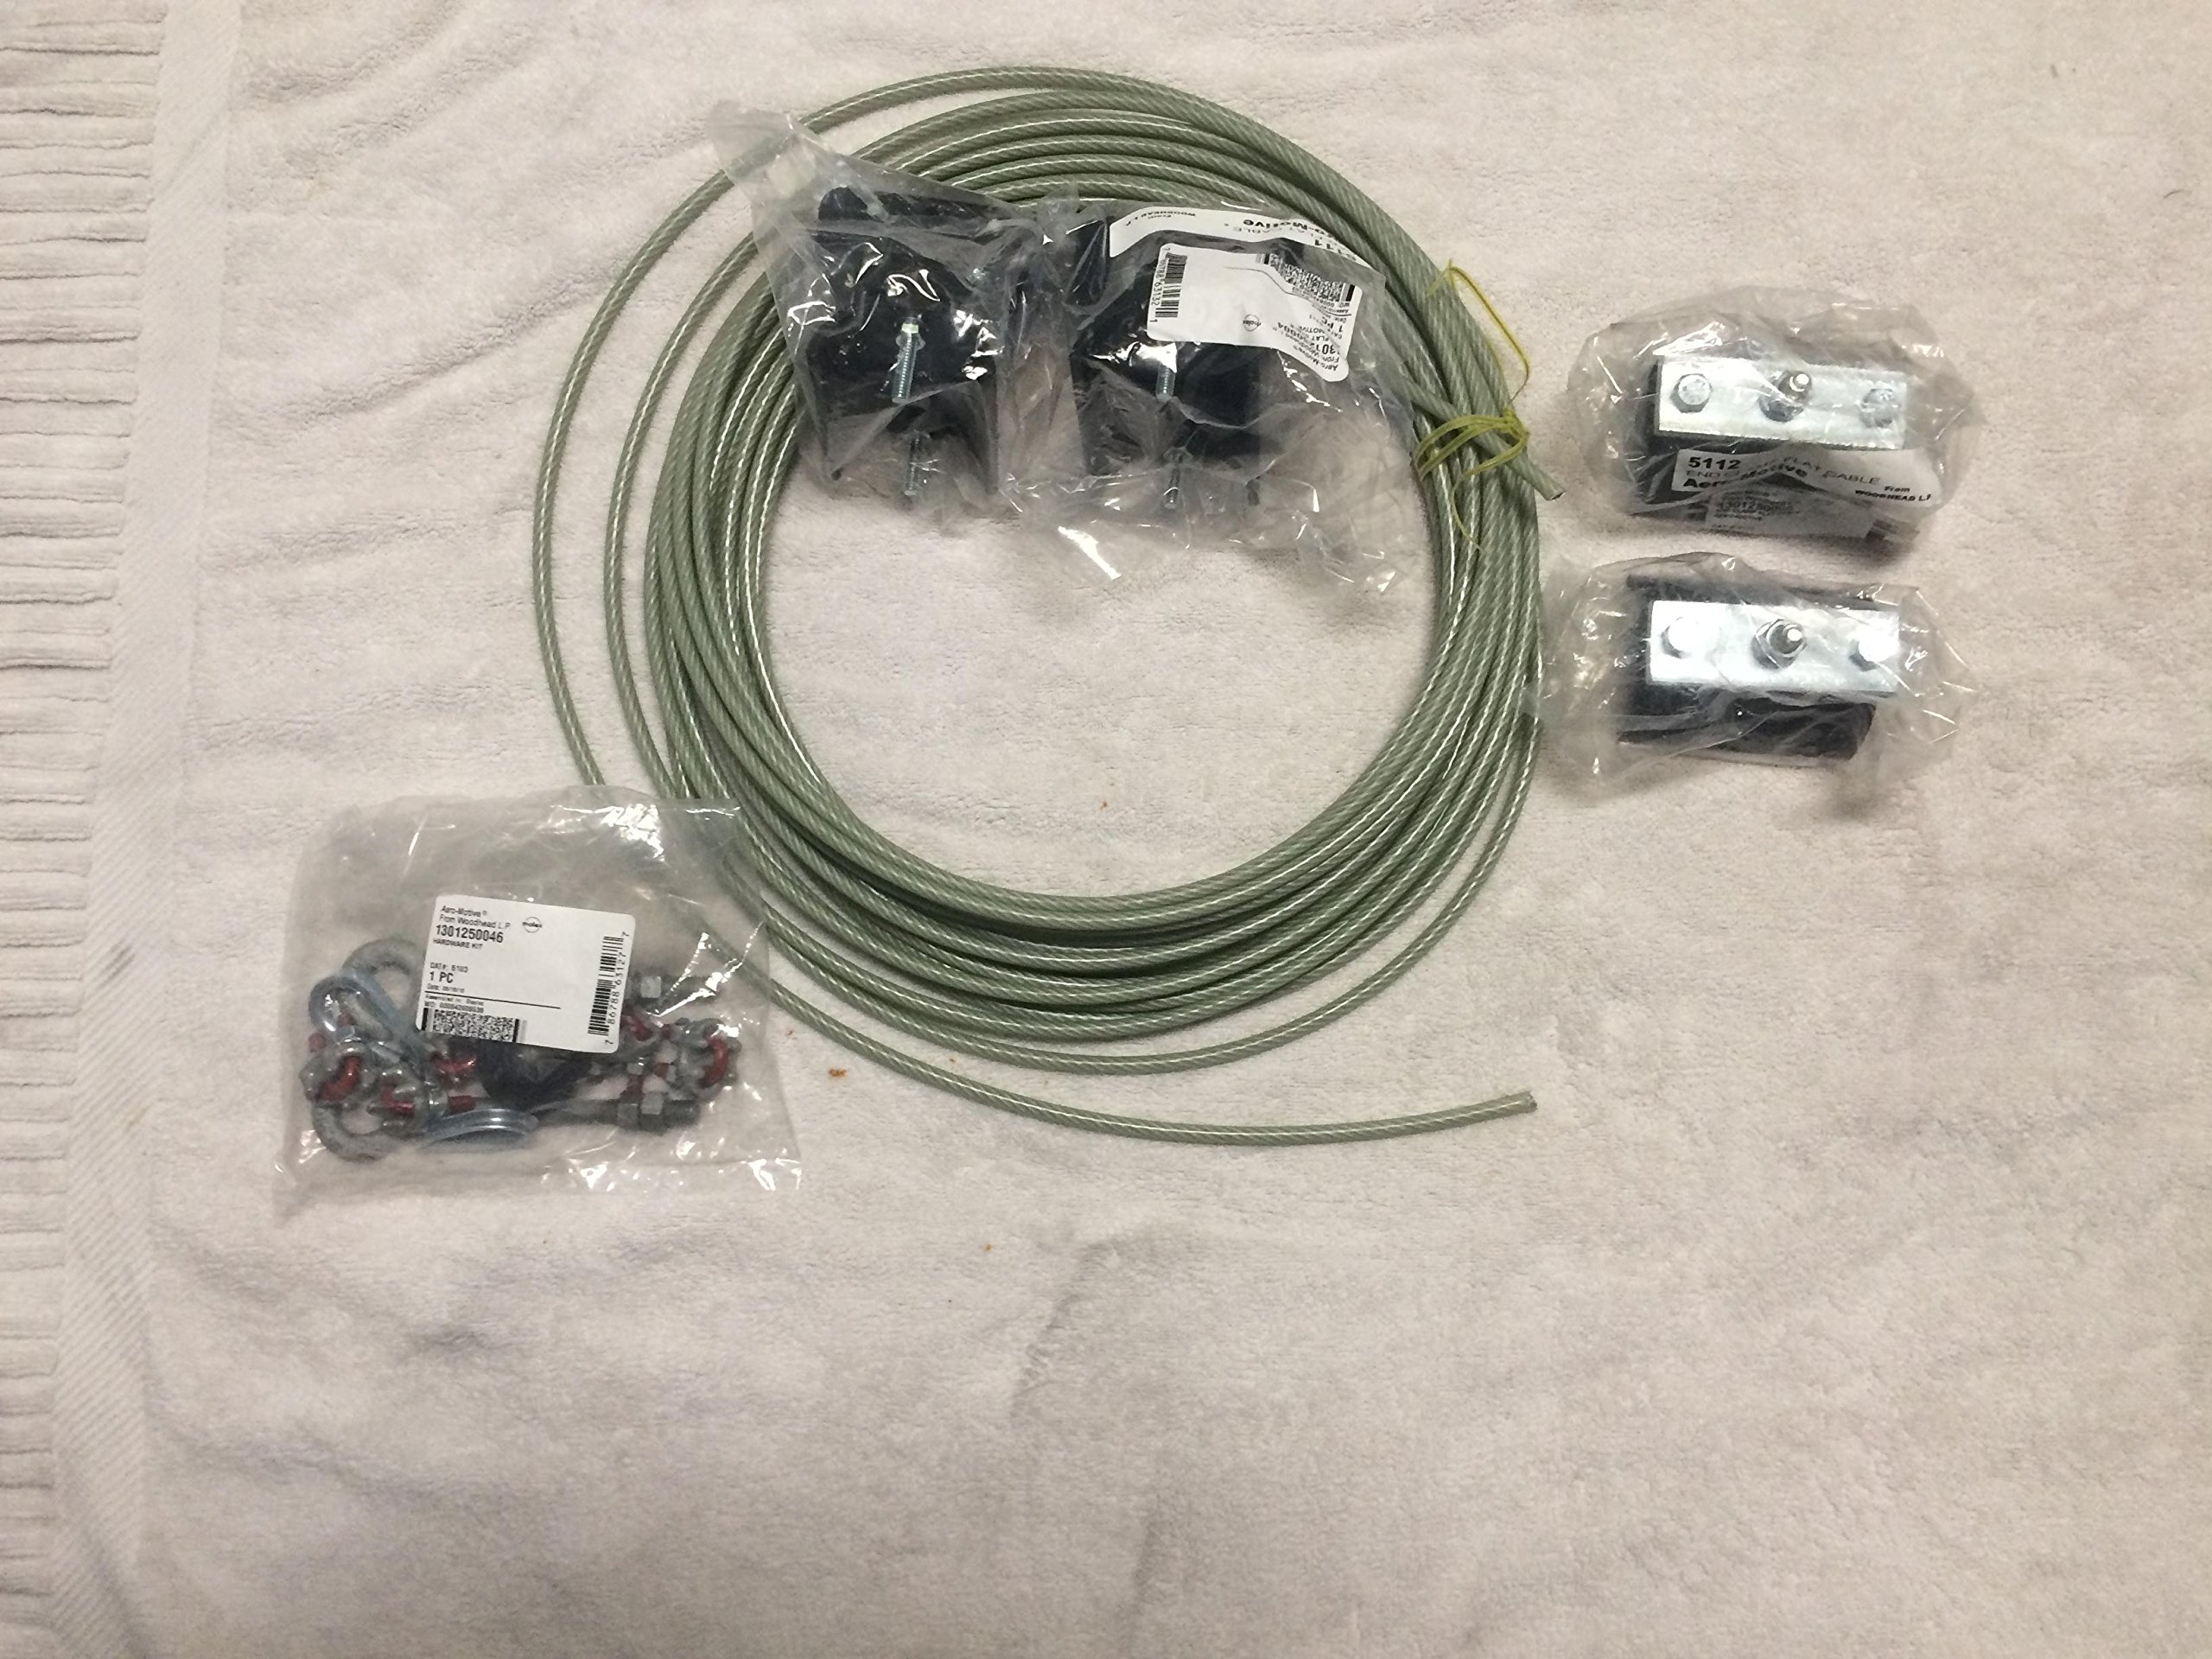 Aero-Motive Festoon System Series 5100 Stretched Wire Festoon For Flat Electric Cables: 5110-02-025